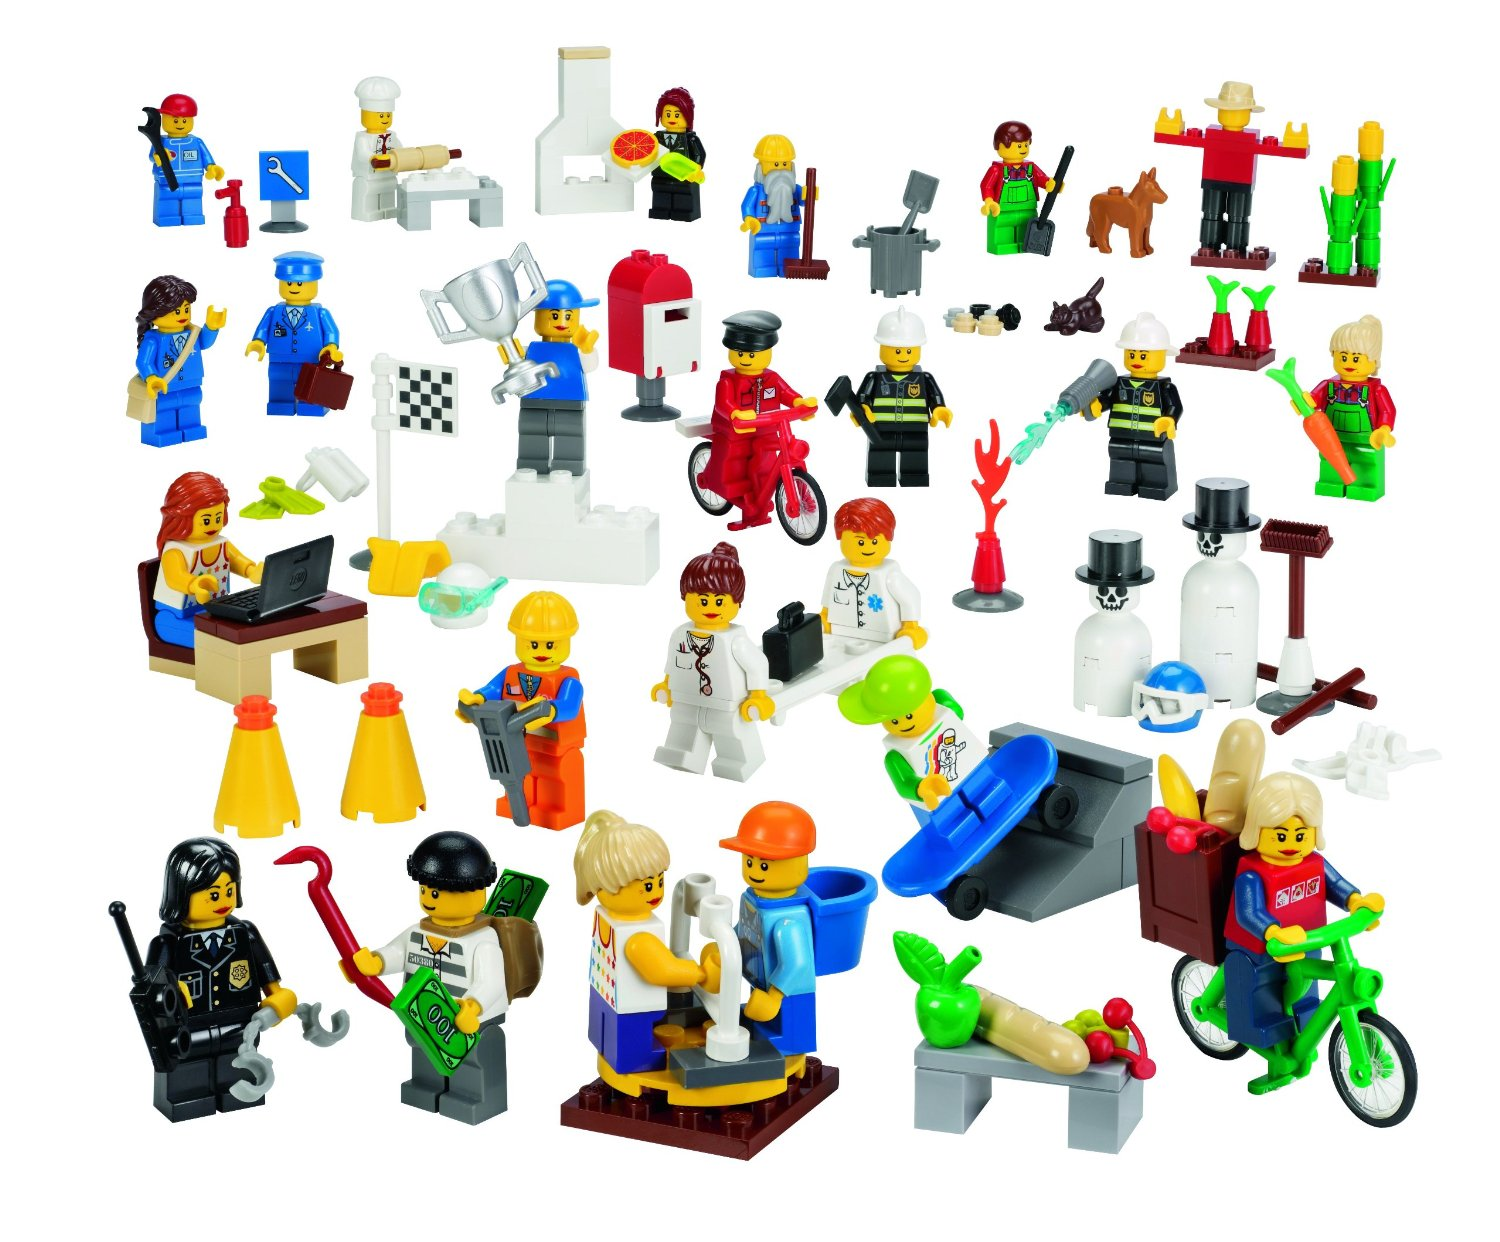 Example of customized photographs of use Lego as an action figure